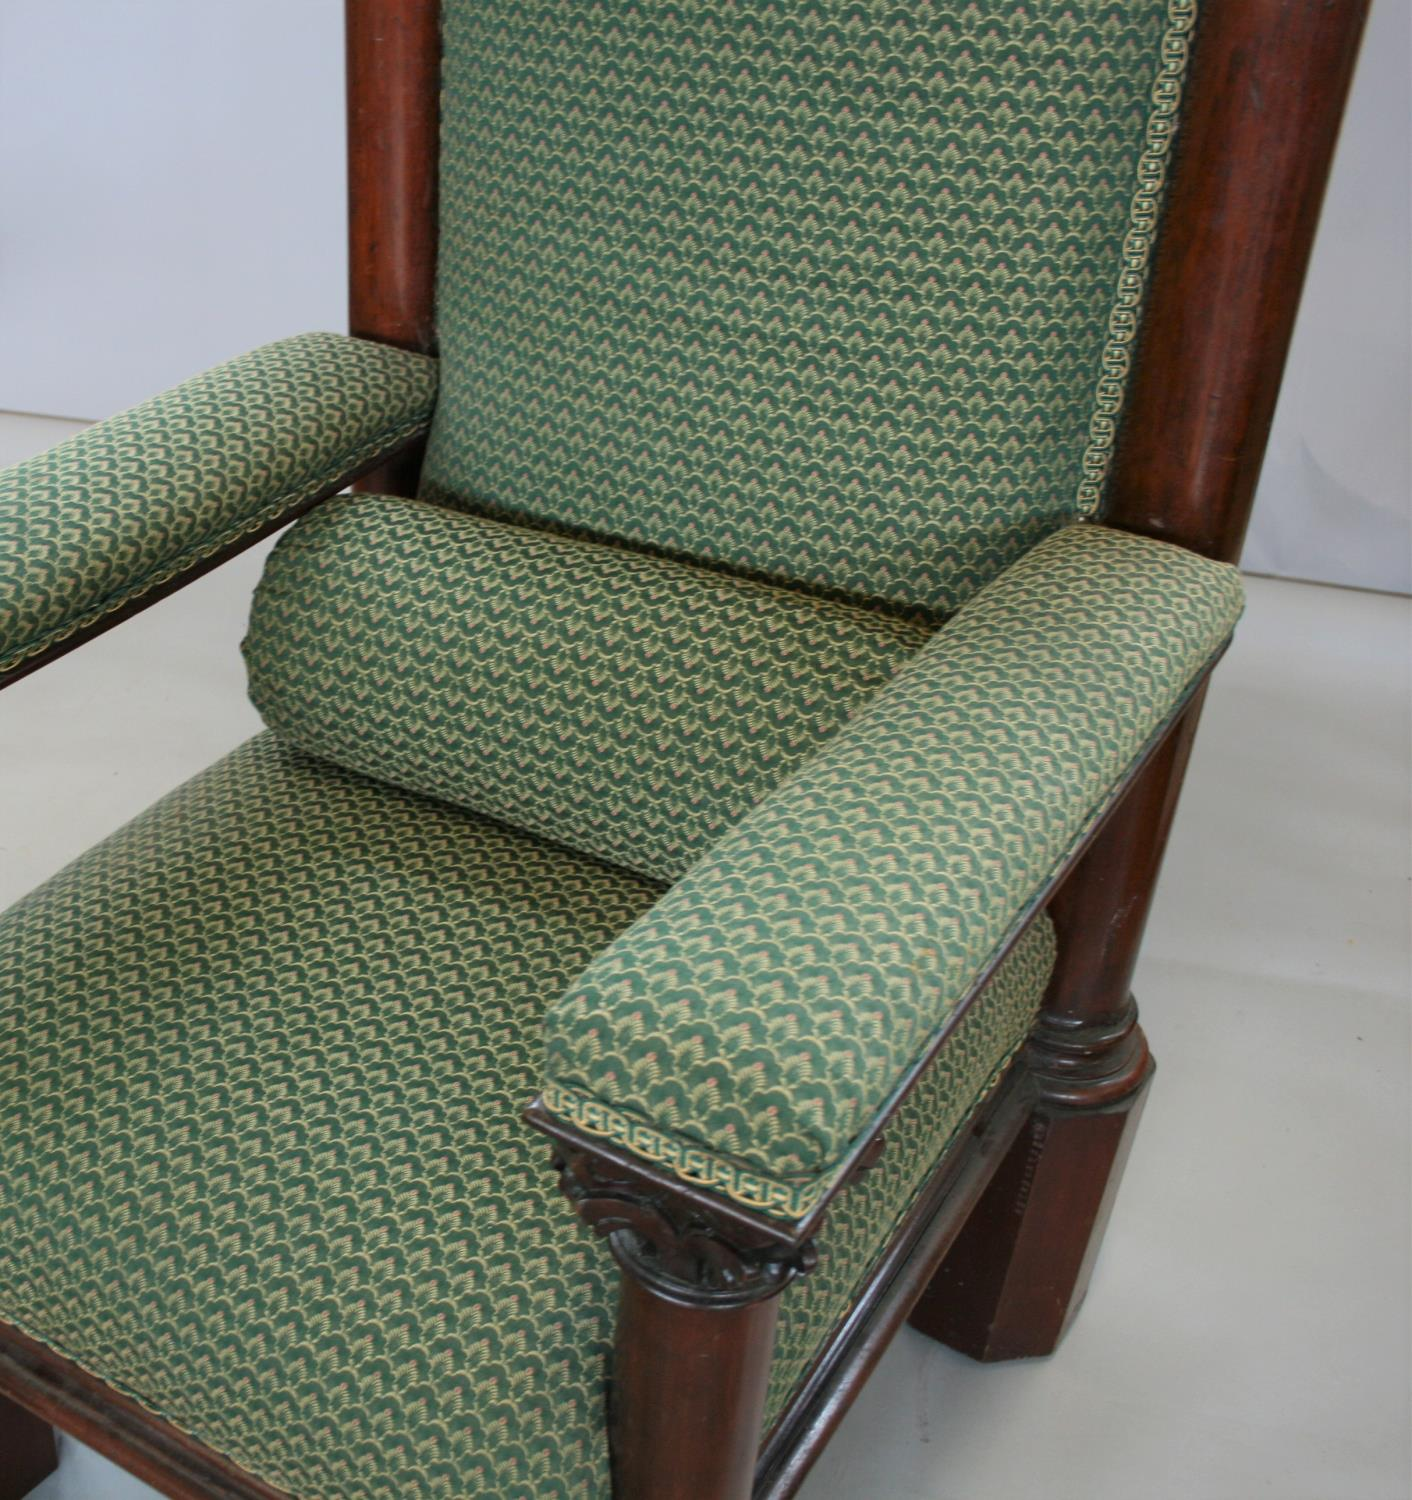 Exceptionally rare mahogany Irish throne chair, stamped Strahan of Dublin. 90W x 230H x 78D - Image 3 of 4